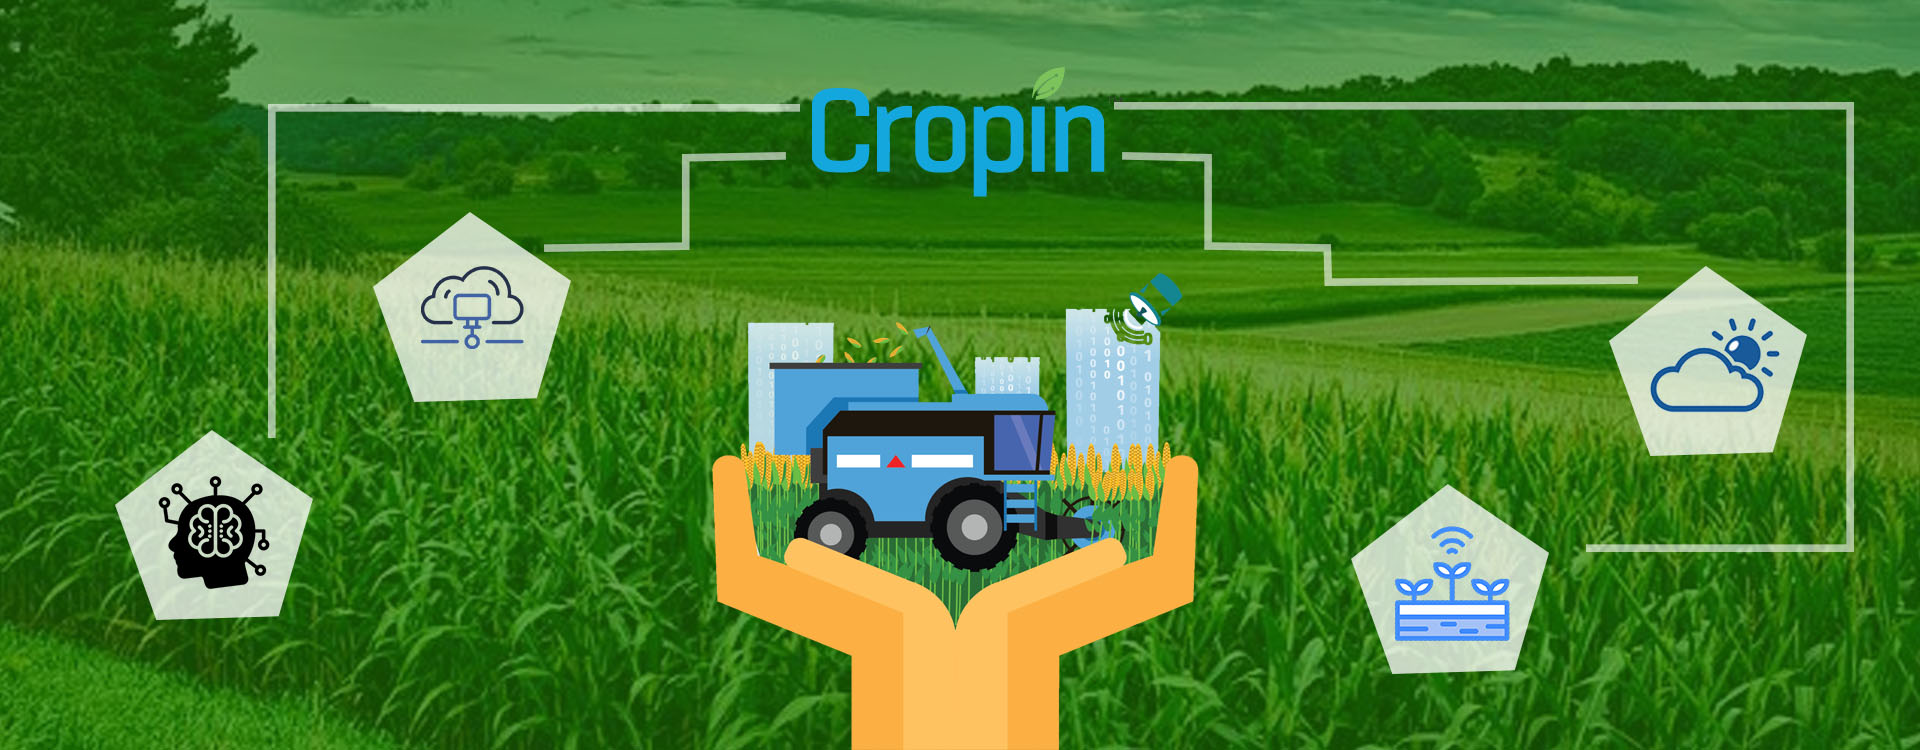 Growth story of agritech start-up CropIn